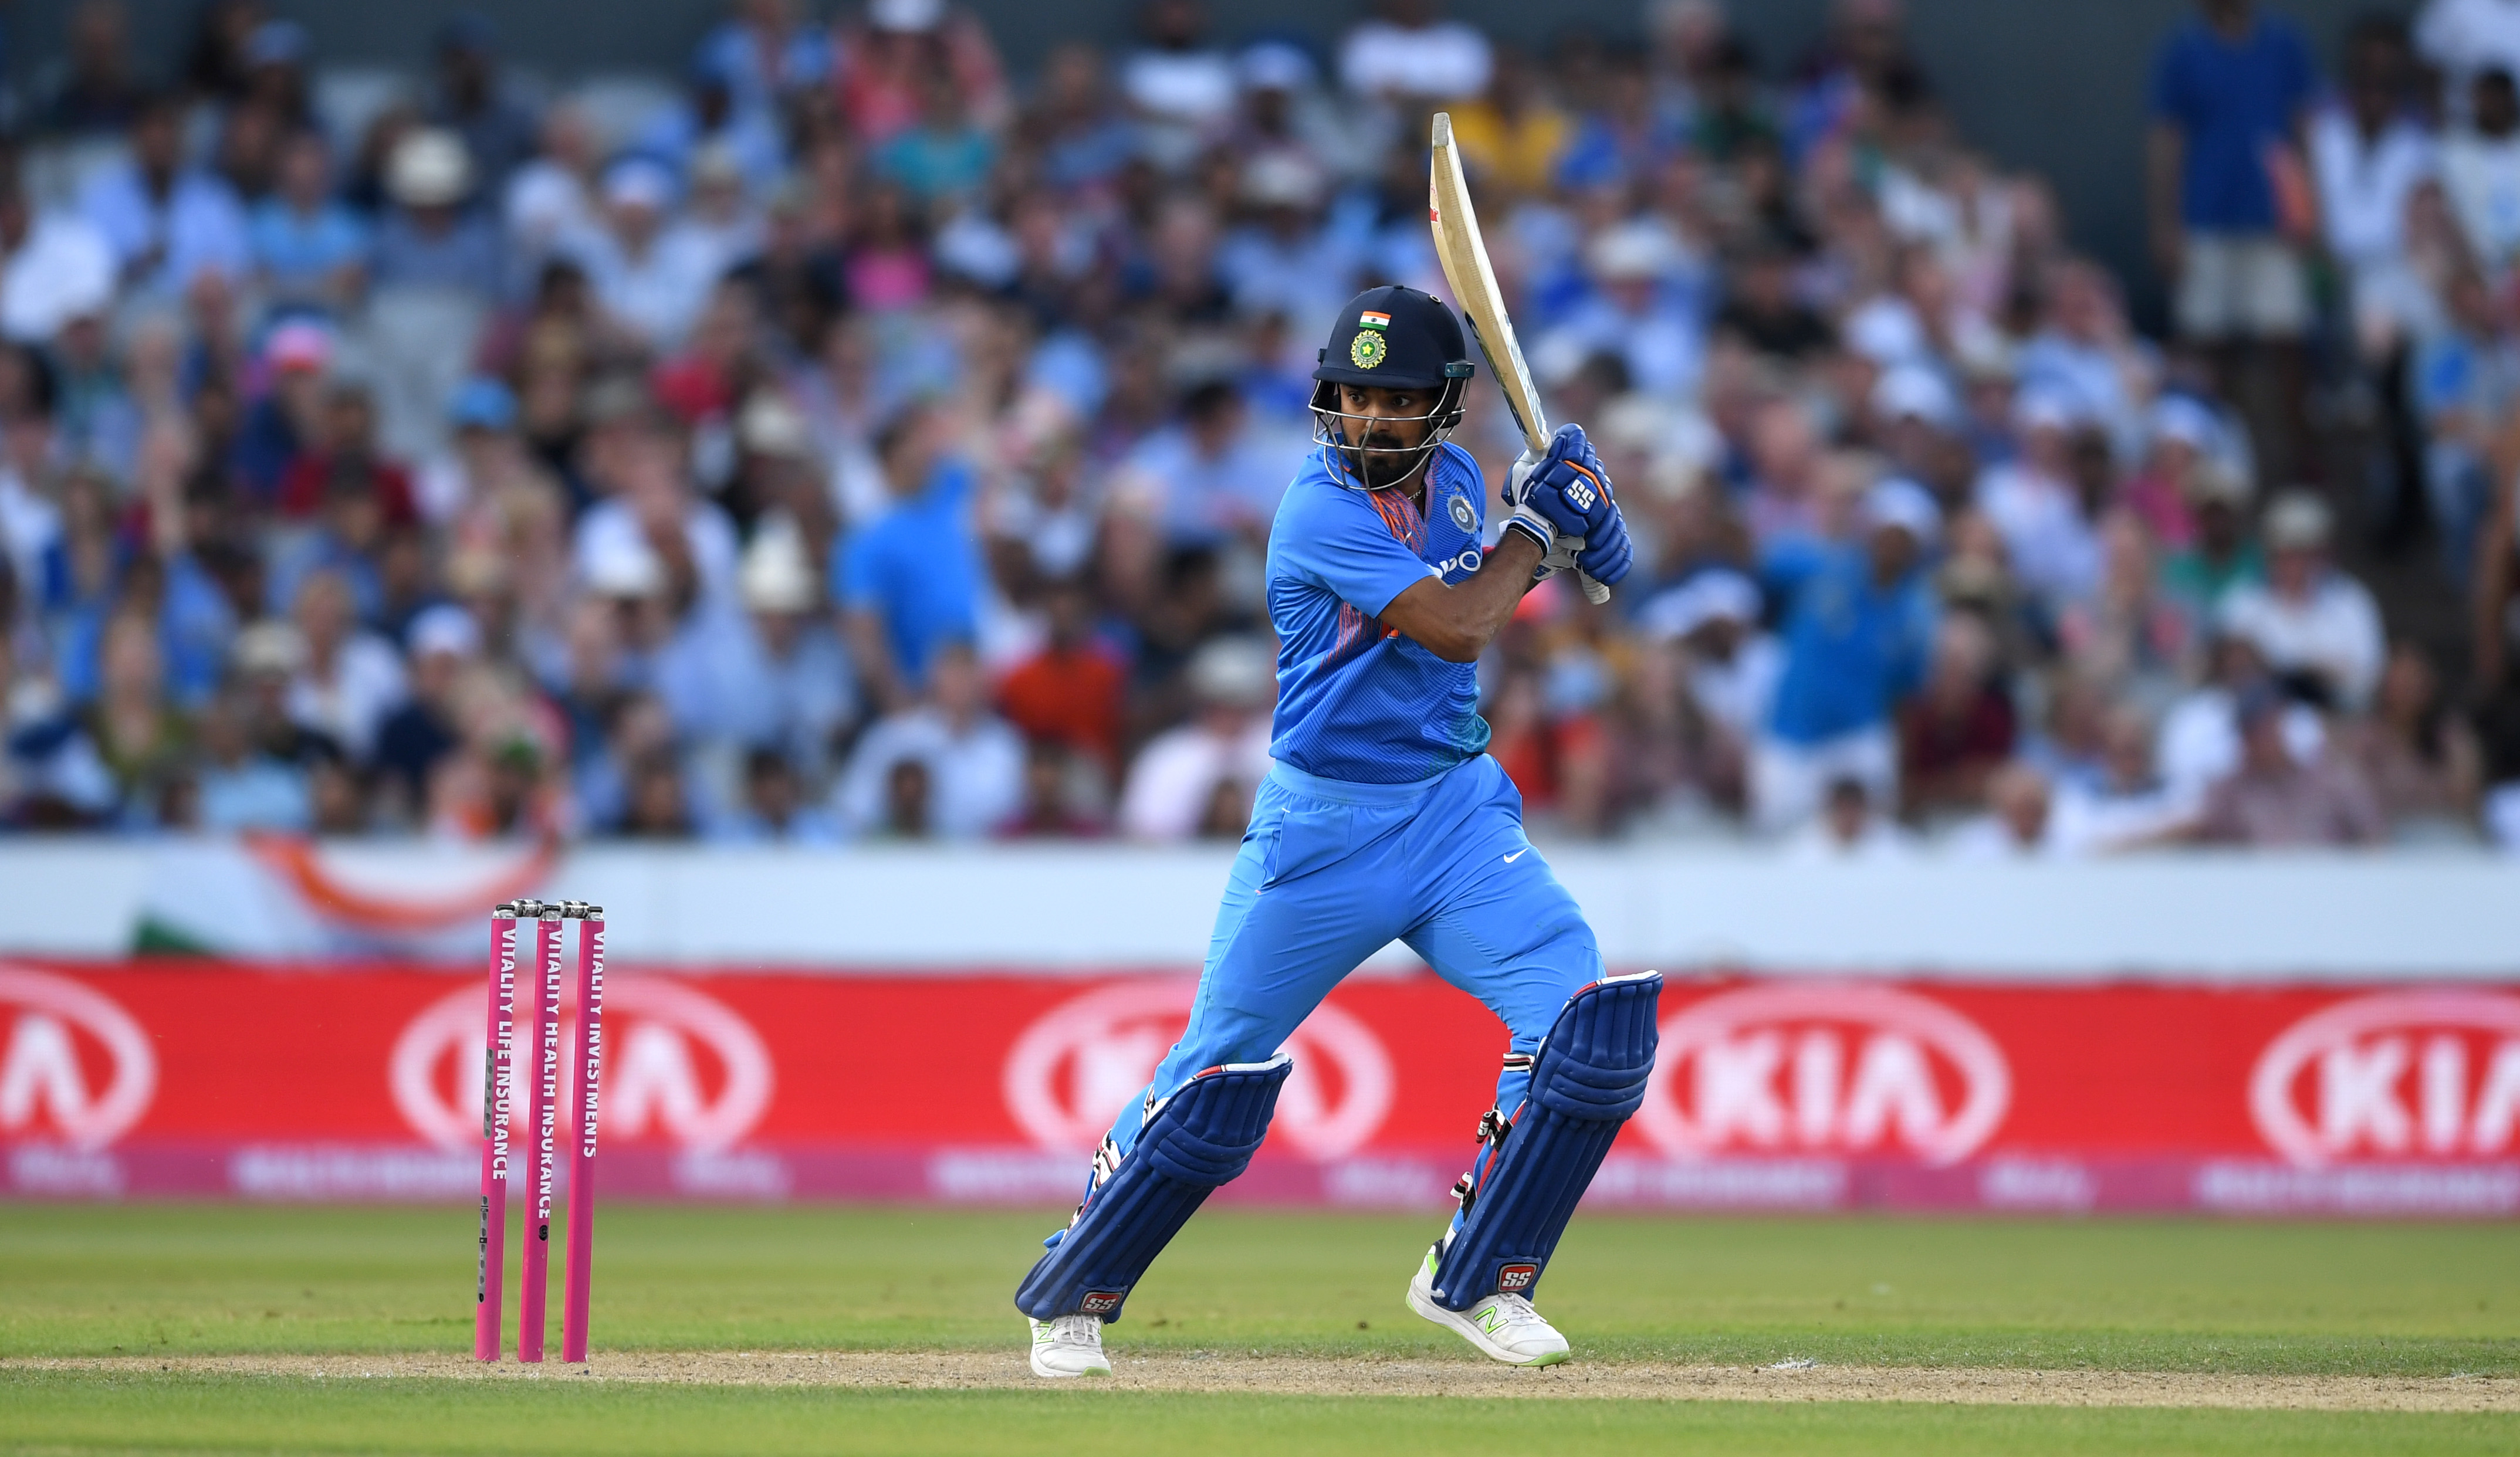 Rahul had scored a century in the opening T20I at Old Trafford | Getty